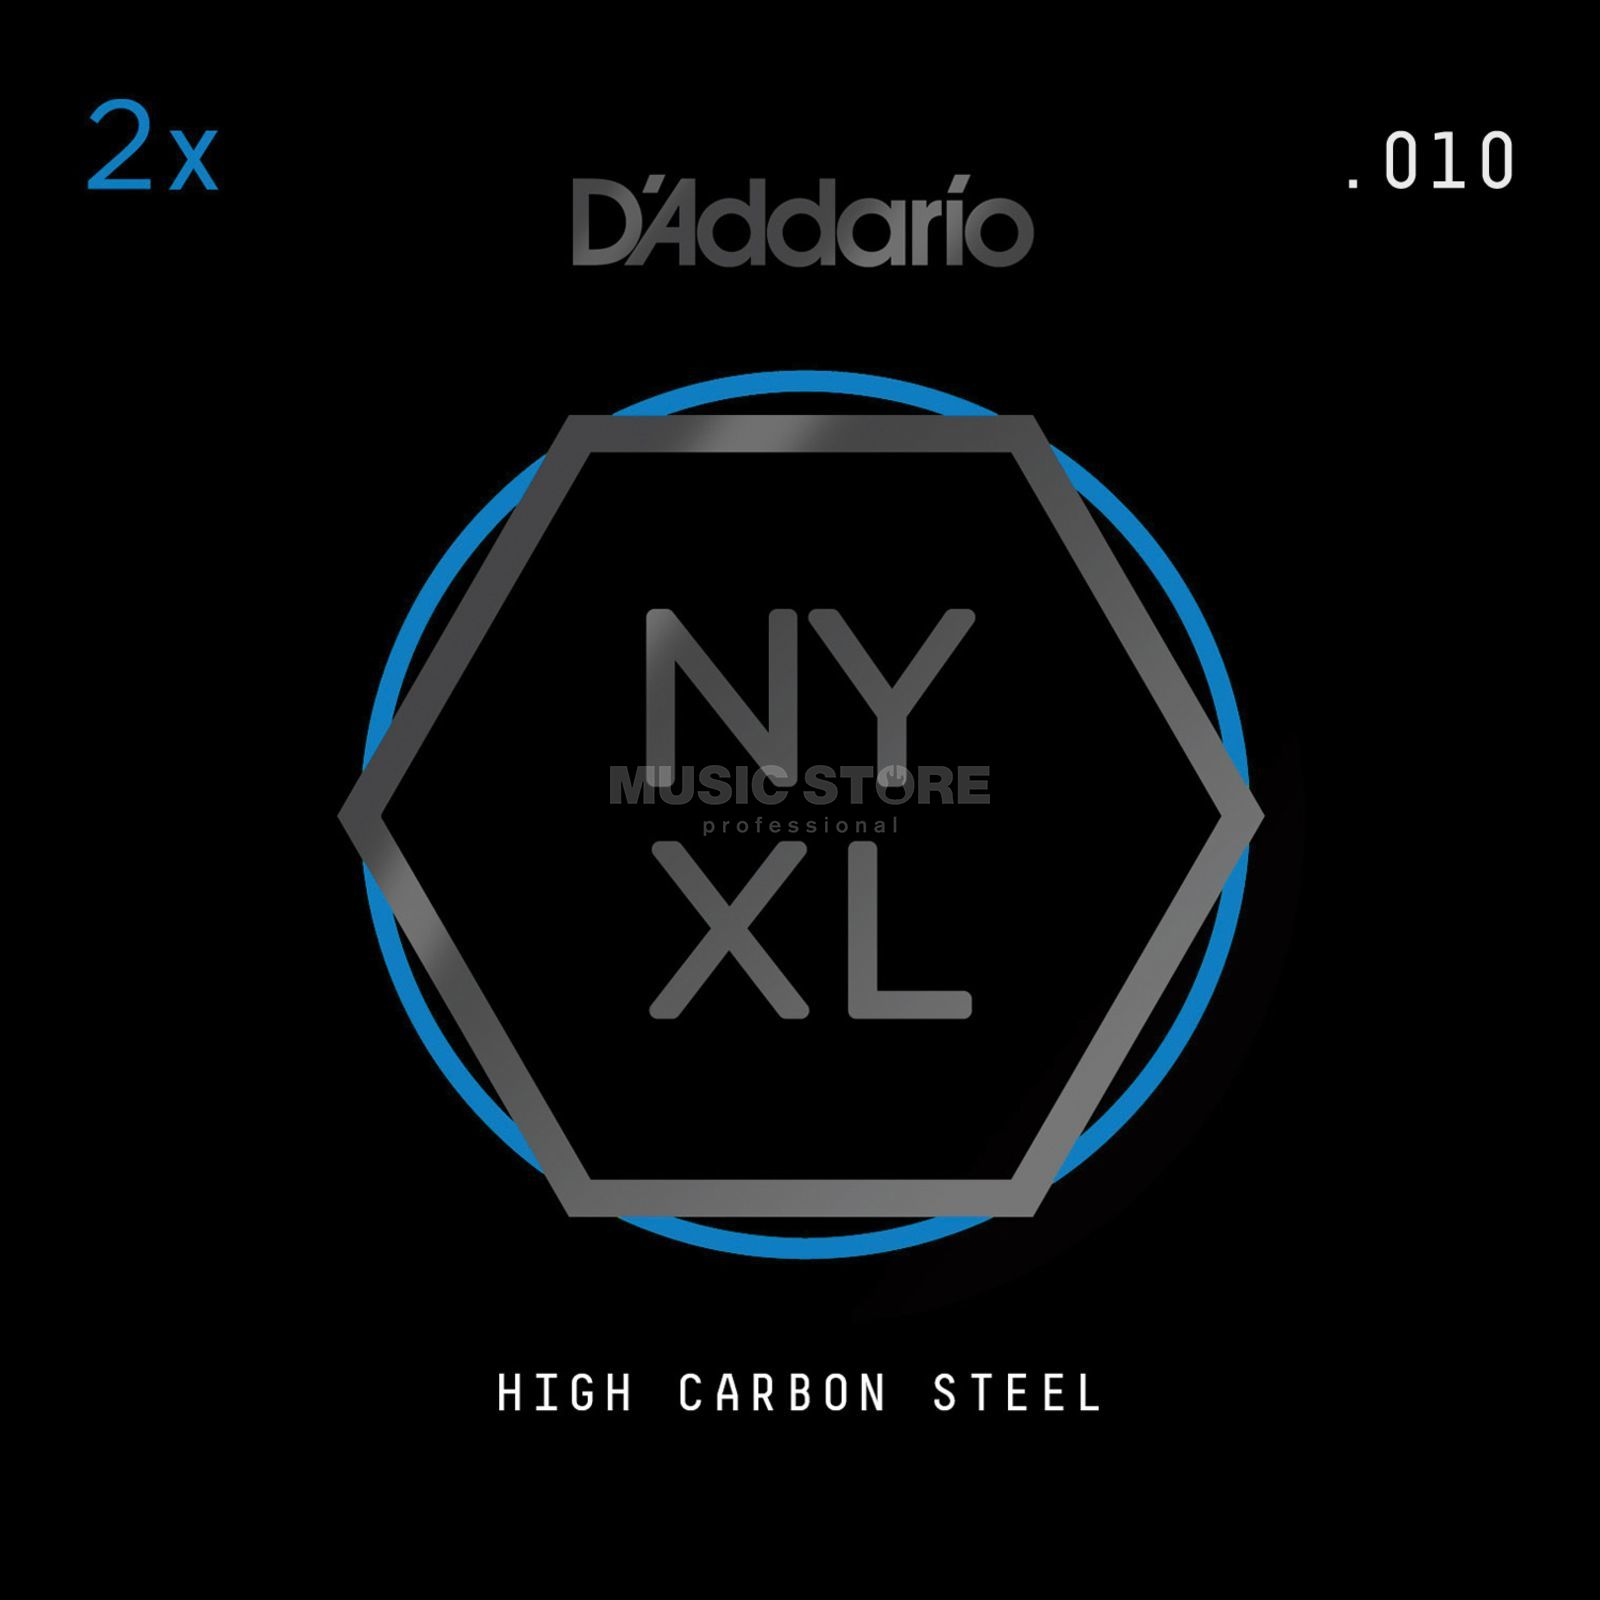 D'Addario NYPL010 Plain Single String 2-Pack - High Carbon Steel Produktbillede